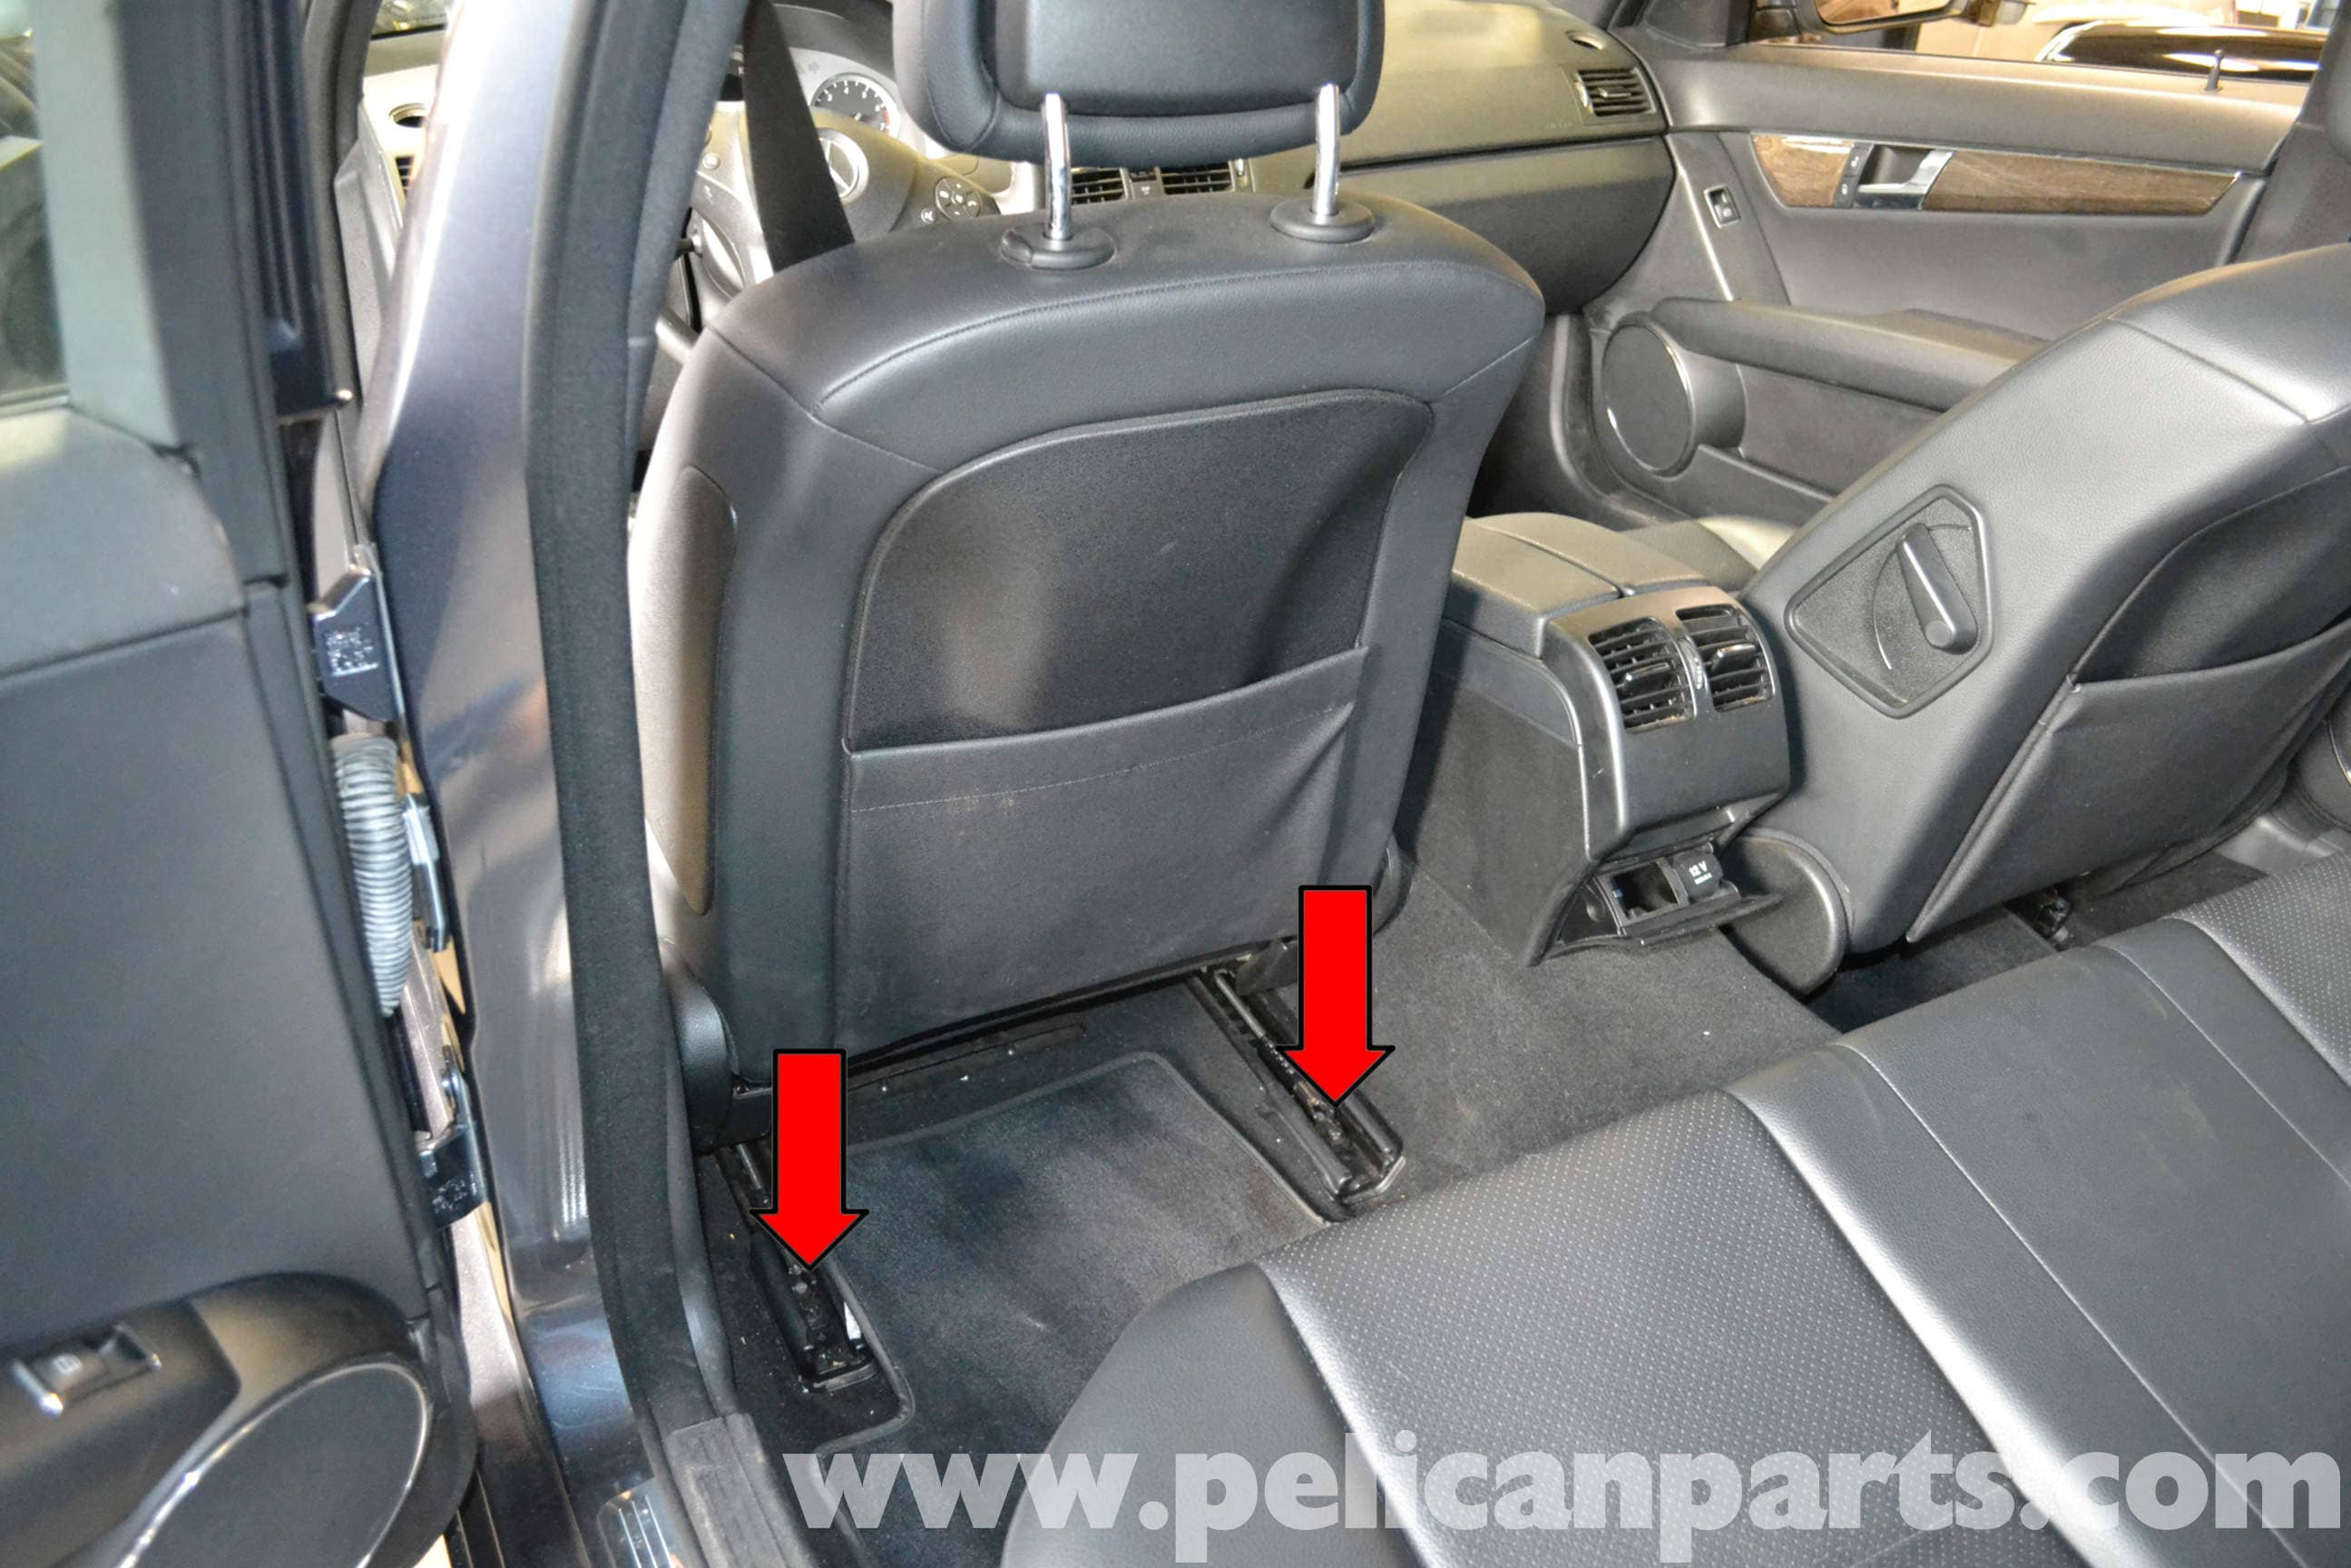 2006 Mercedes Benz C Class Pictures C6057 pi36249839 as well 109 BODY Seats Replacement besides Watch furthermore E Class Cabriolet 2010 furthermore 1052827 review 2011 Mercedes Benz C63 Amg With Performance Package. on 2010 mercedes e350 interior